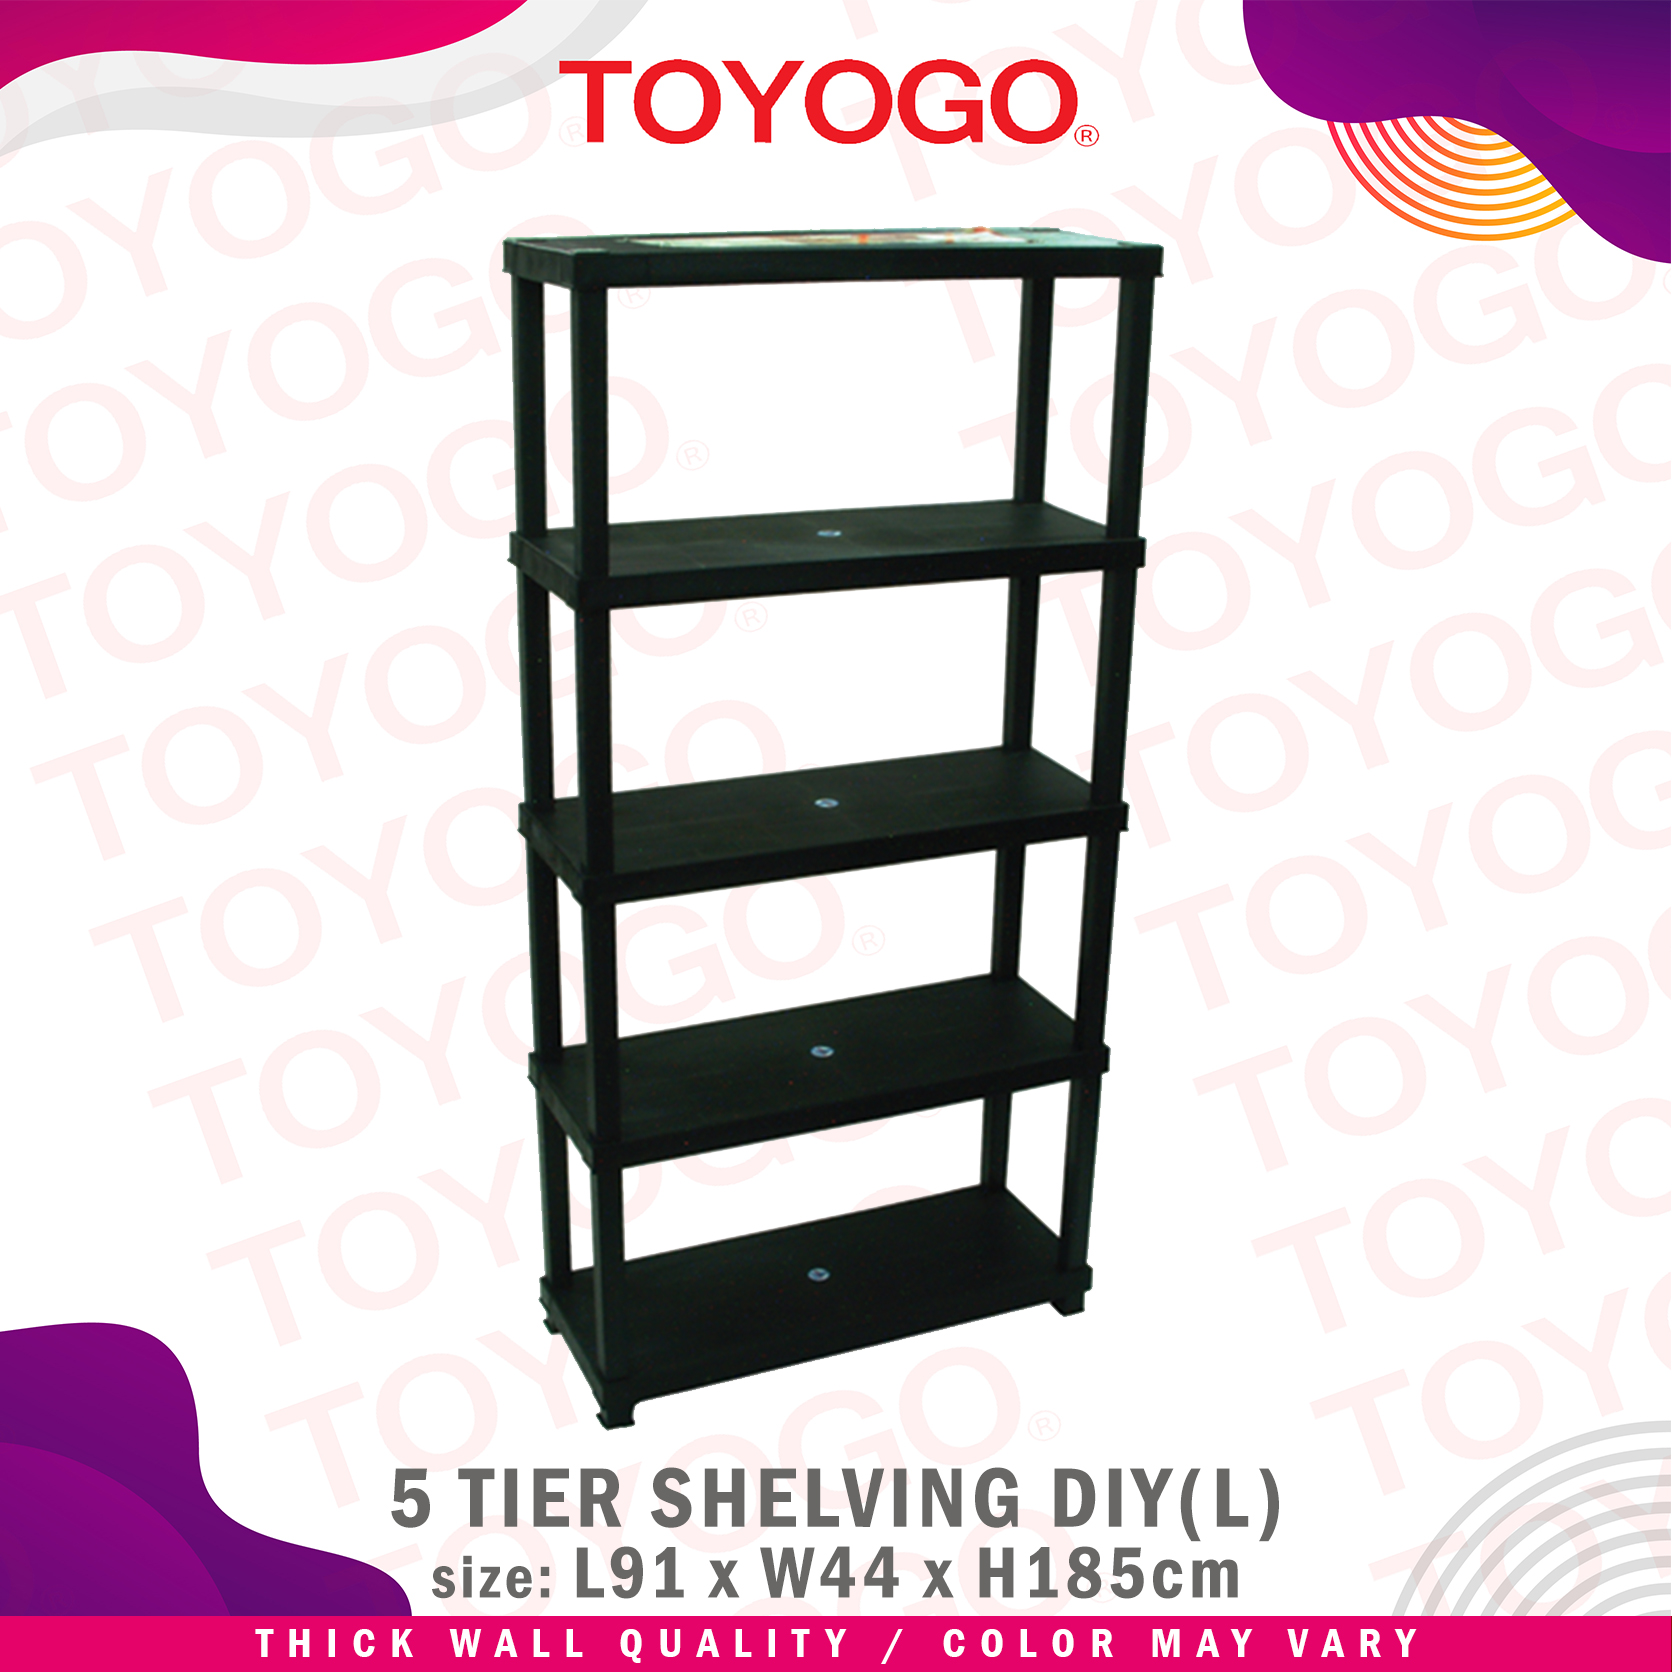 Toyogo Multi Function DIY Shelving Rack System (5 Tier) (892-5)